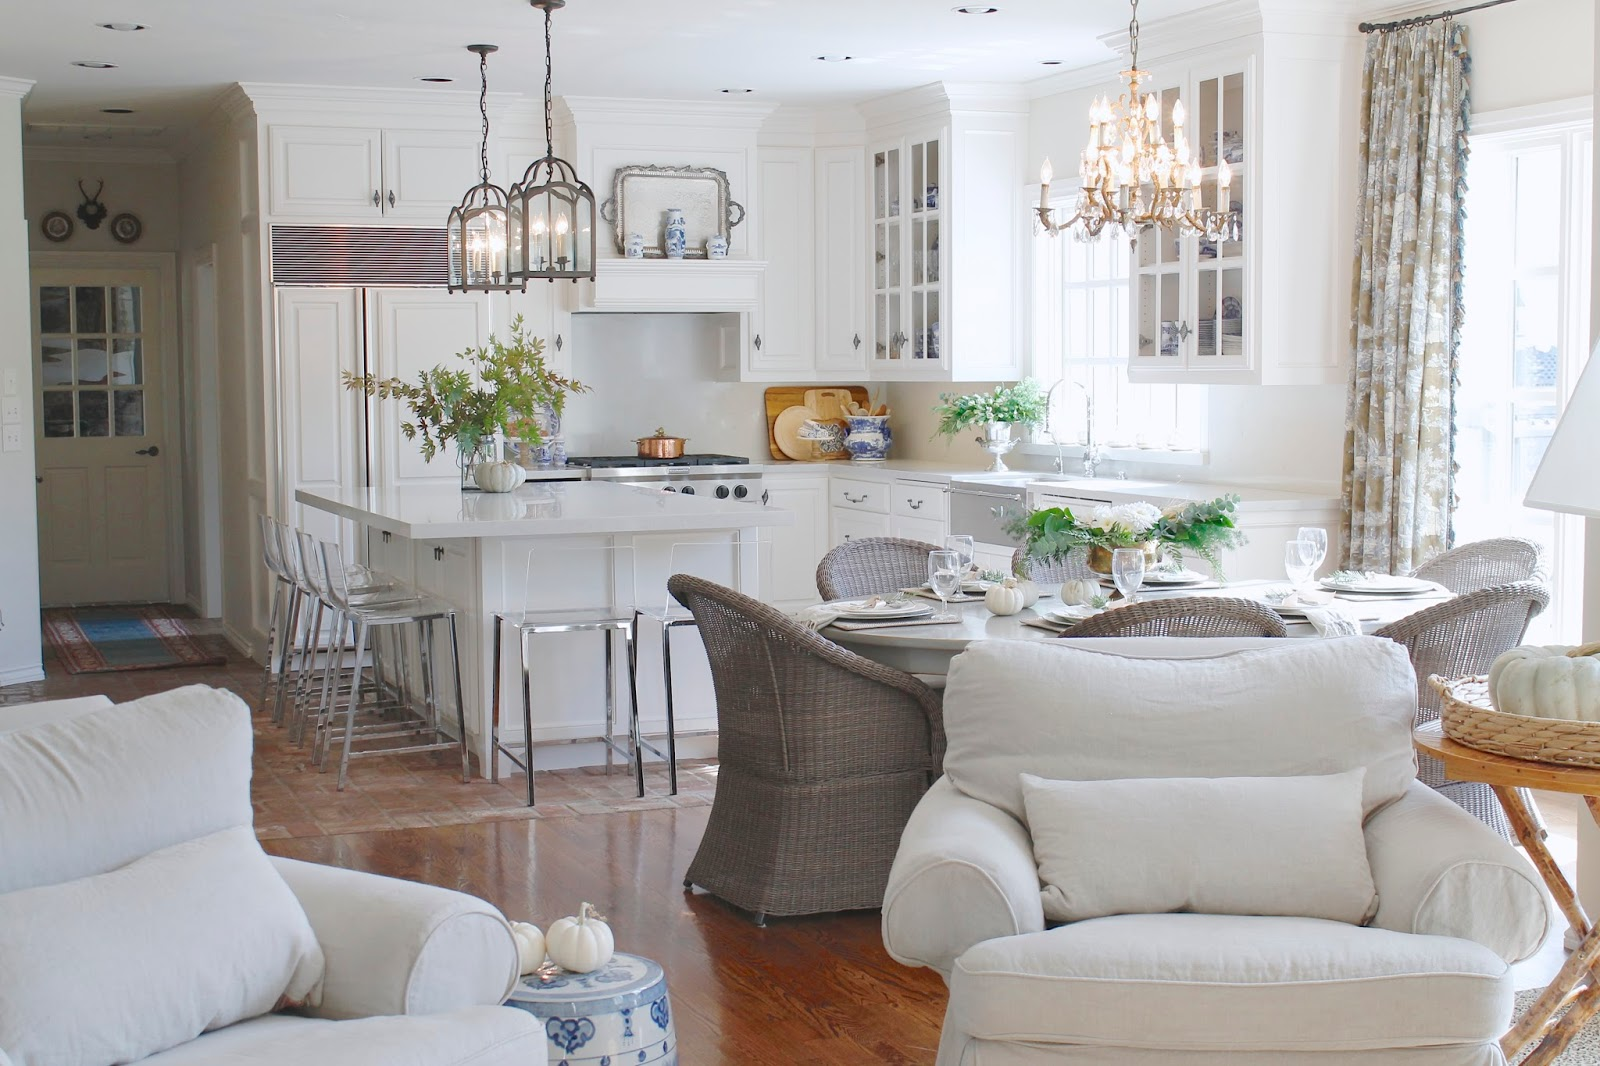 Eleven Gables: The Inspired Room Tour: The Evolution of a Room and ...